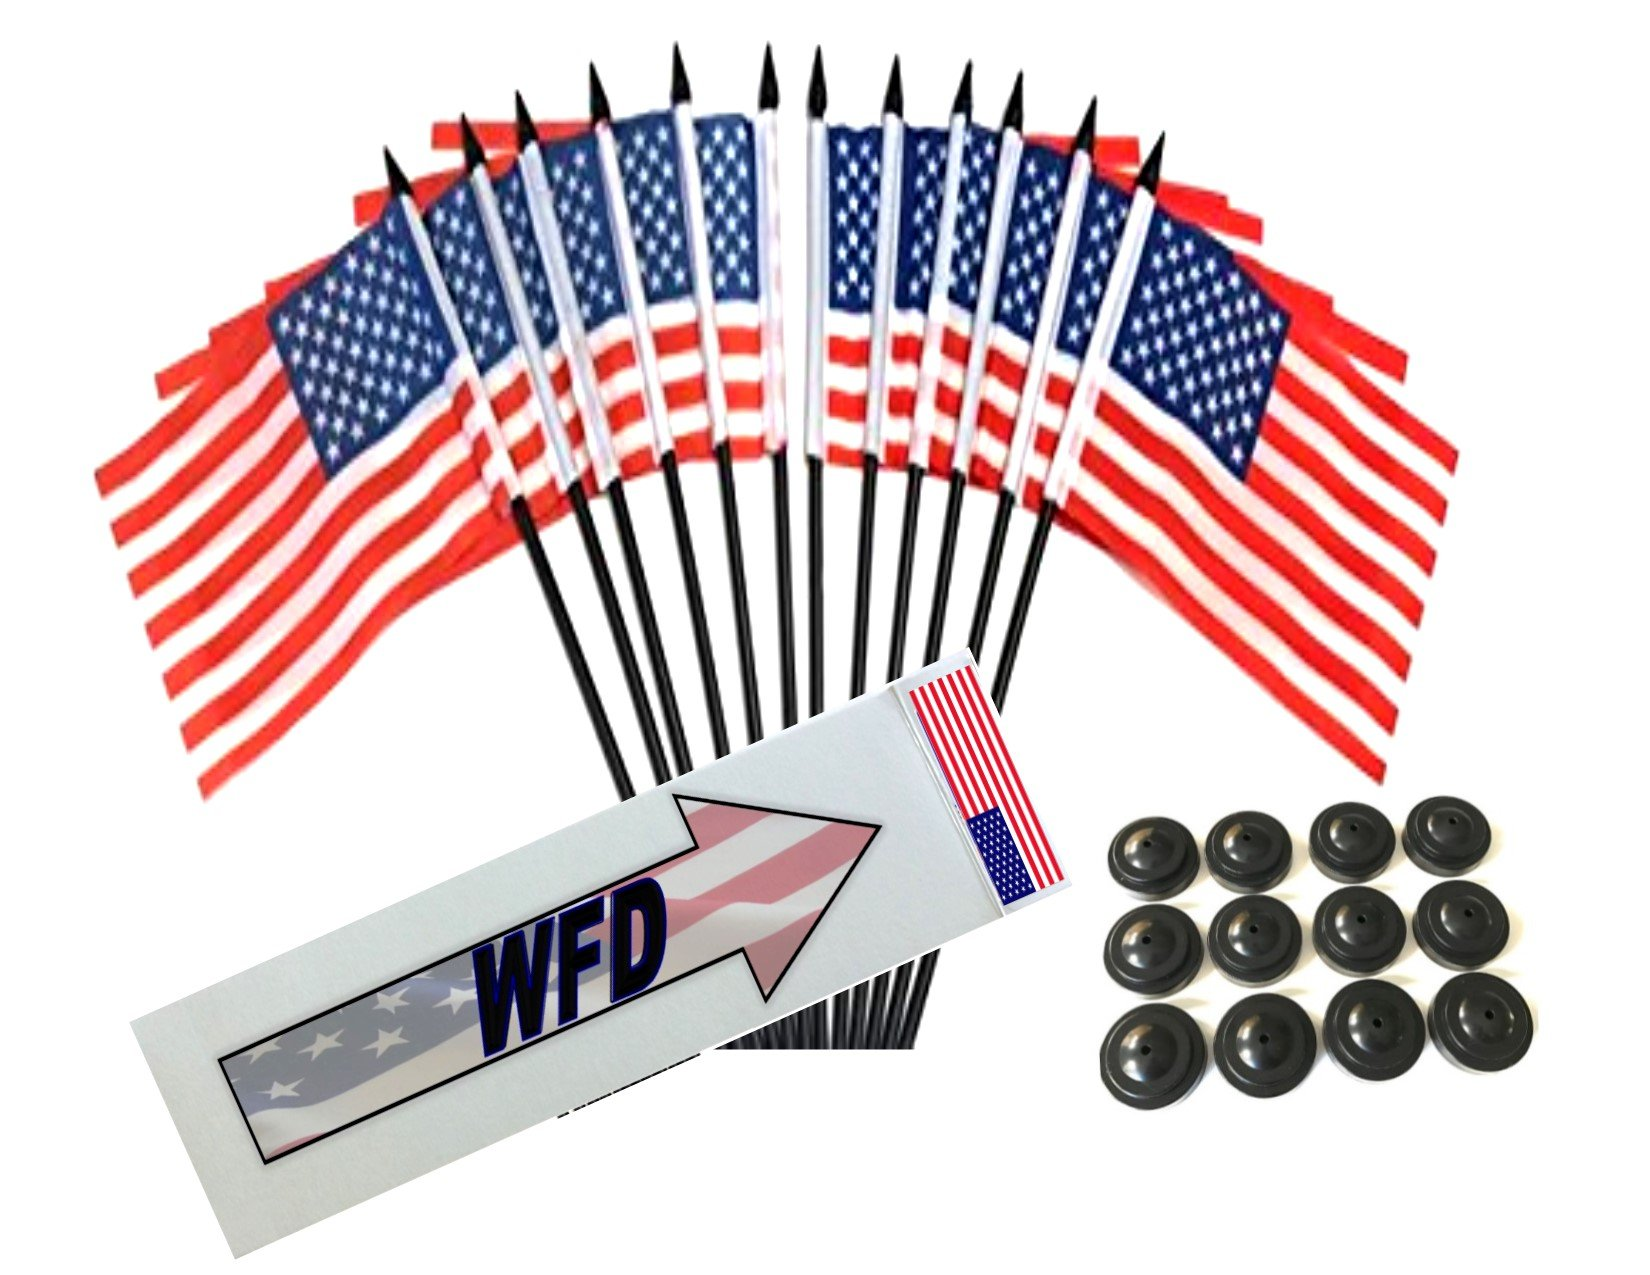 BOX of 12 United States 4''x6'' Miniature Desk & Table Flags With 12 Flag Stands, 4x6 United States Small Mini Stick Flags